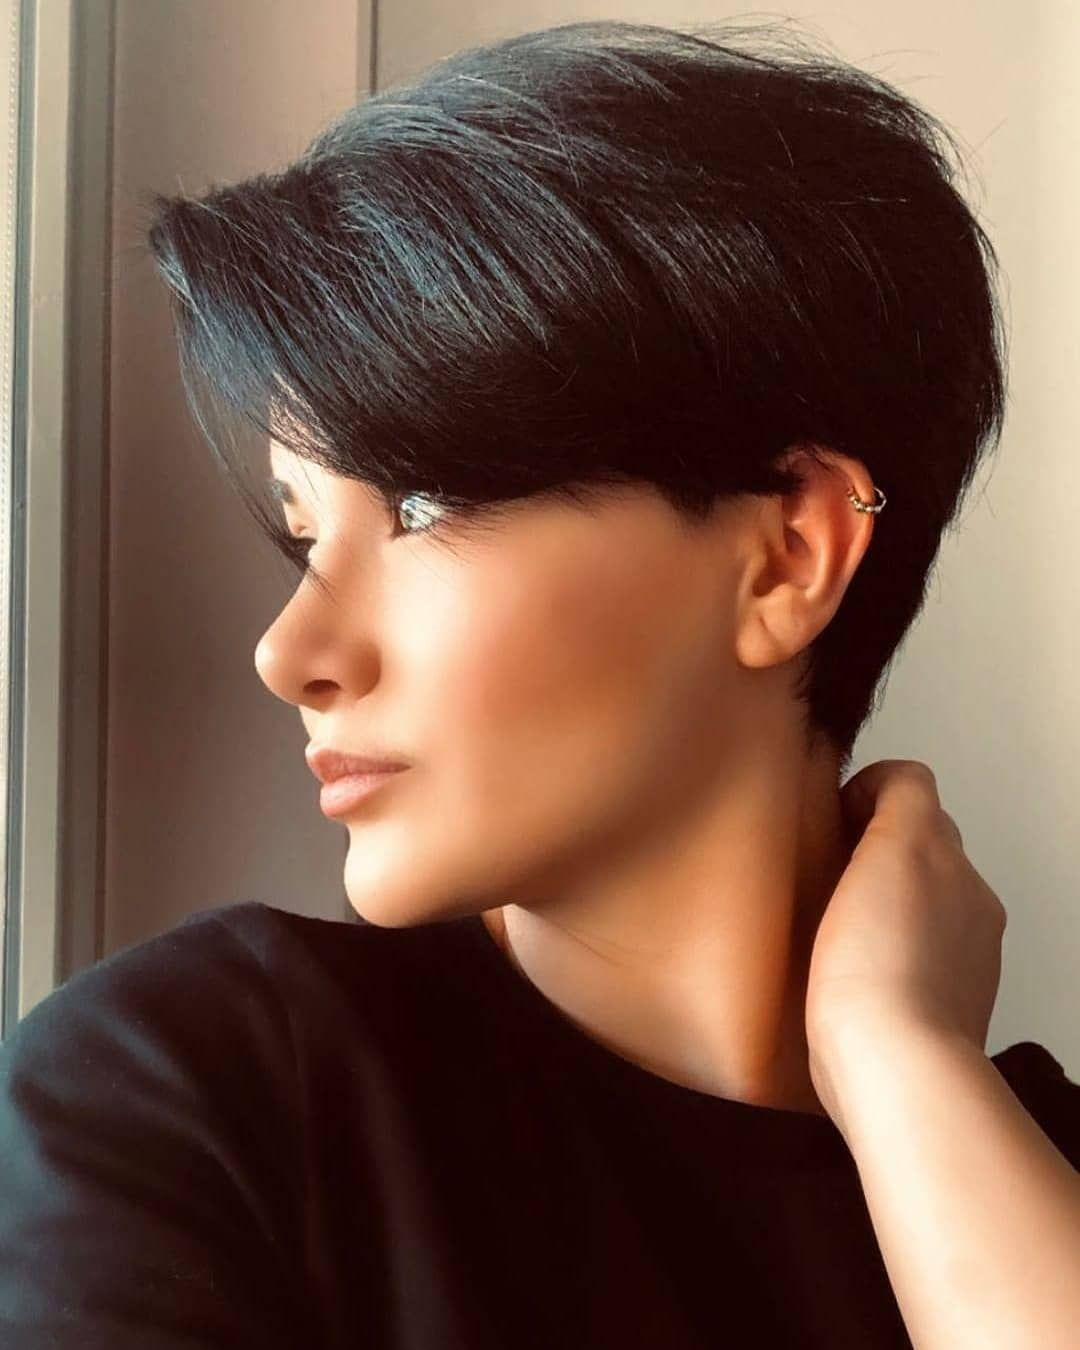 60 Of The Most Stunning Short Hairstyles On Instagram March 2019 In 2020 Short Hair Styles Thick Hair Styles Hair Styles